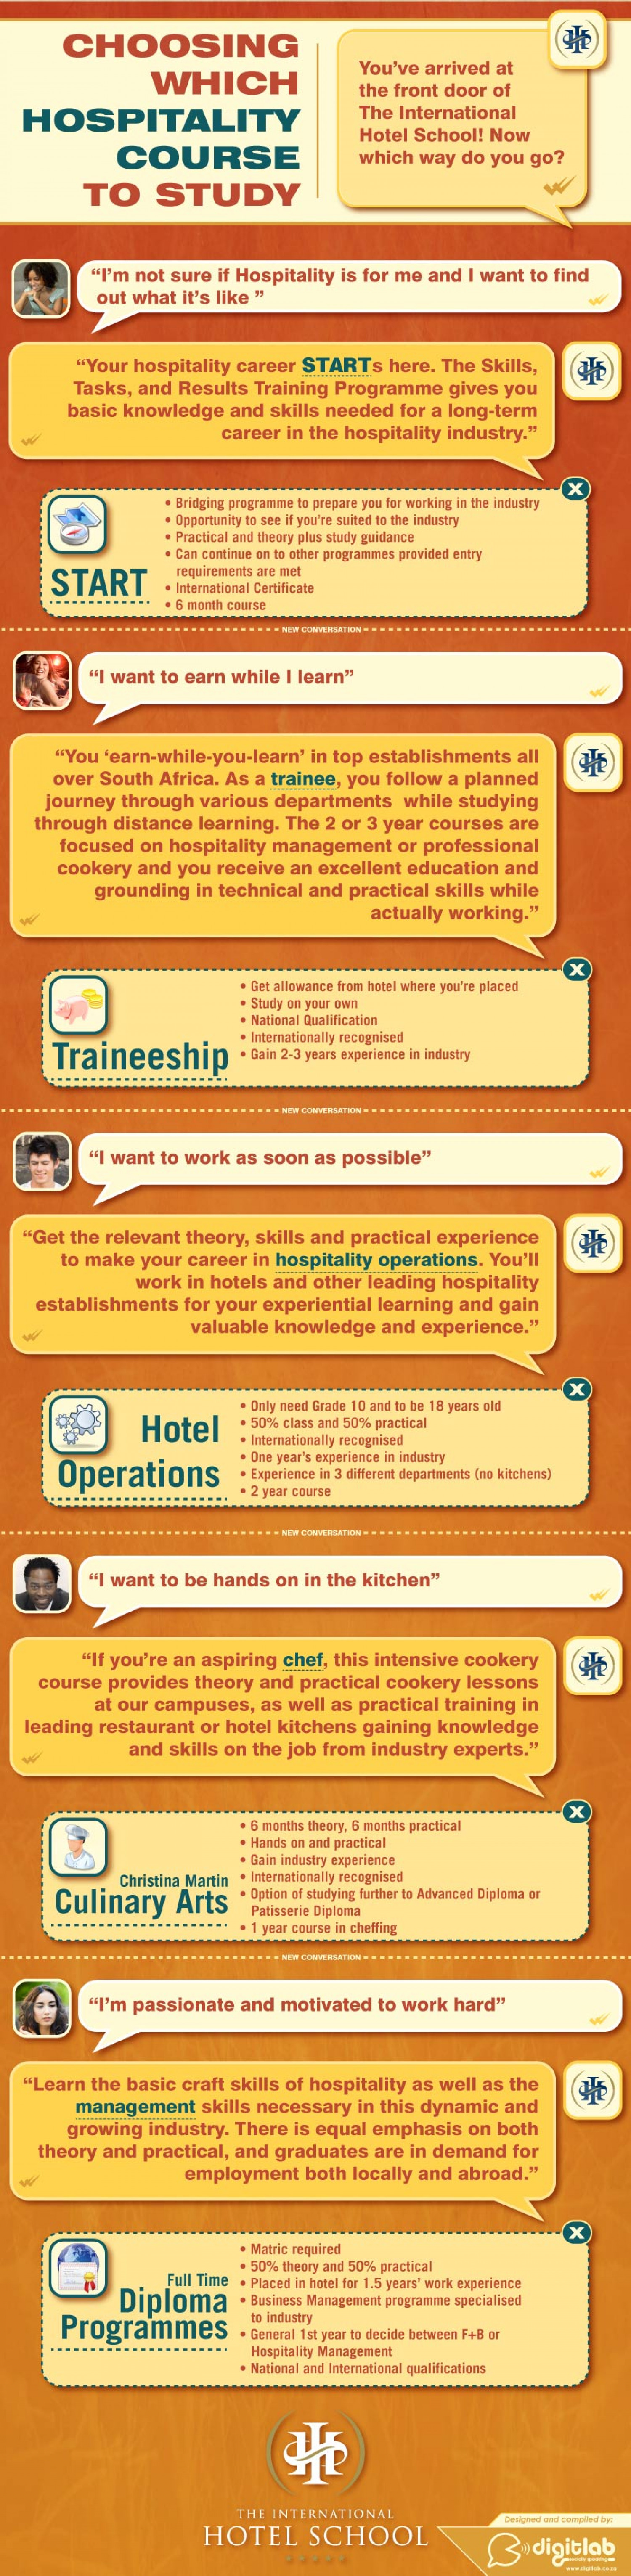 Choosing which Hospitality course to study Infographic